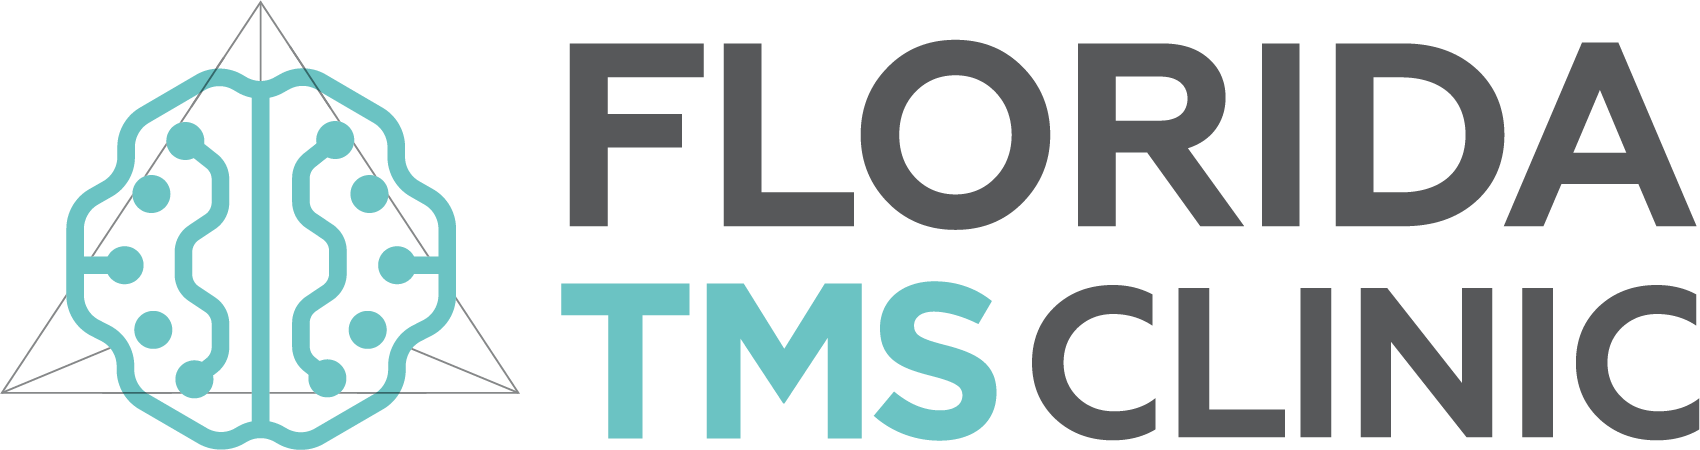 FLORIDA TMS CLINIC in Wesley Chapel, FL Now Offers TMS Therapy to Boost Mental Health and Wellness